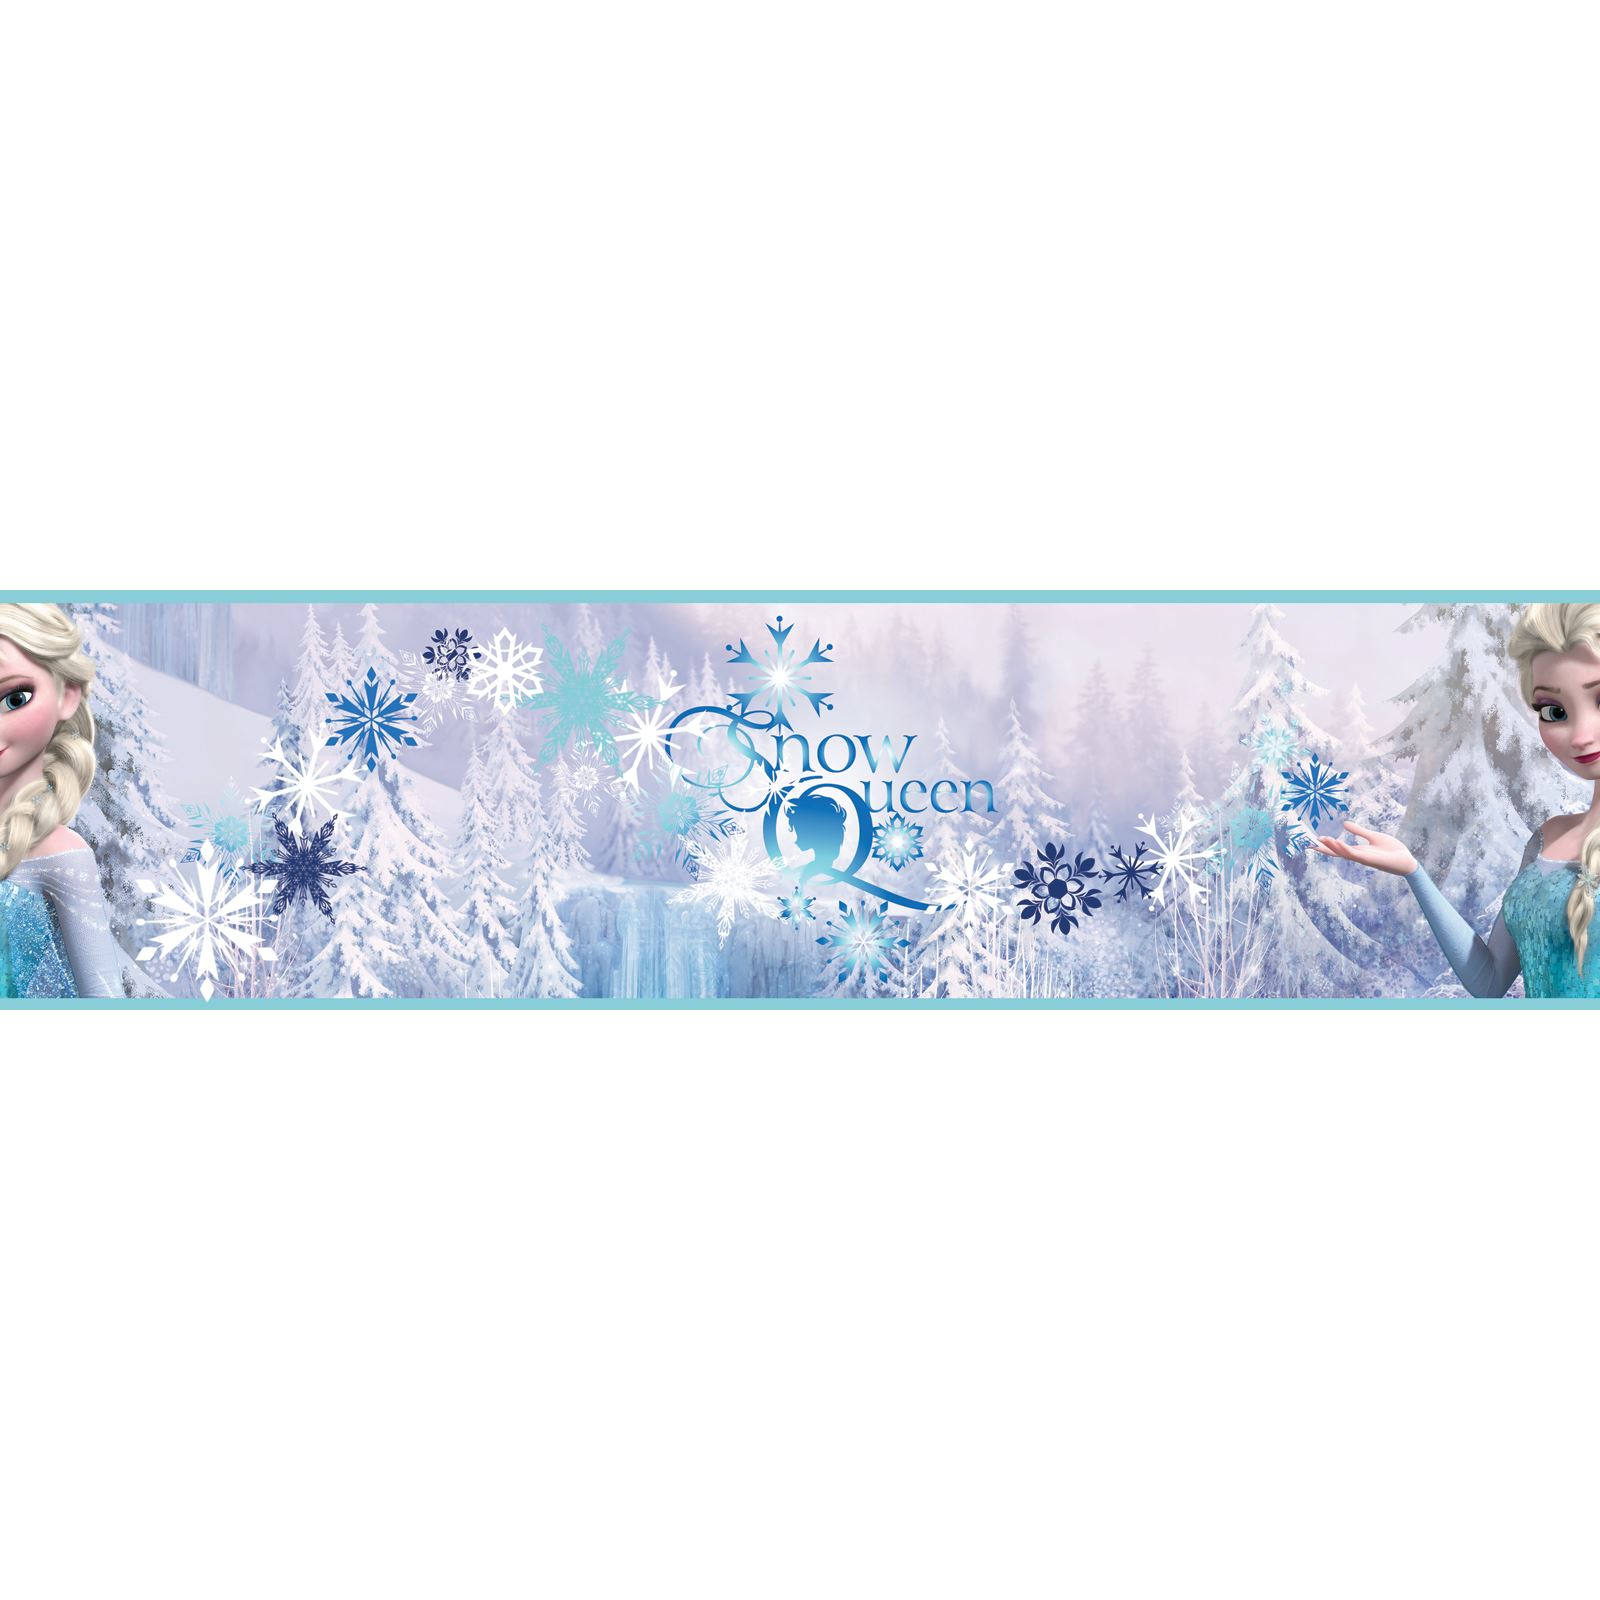 Details about DISNEY FROZEN WALLPAPER BORDERS AND WALL STICKERS WALL 1600x1600